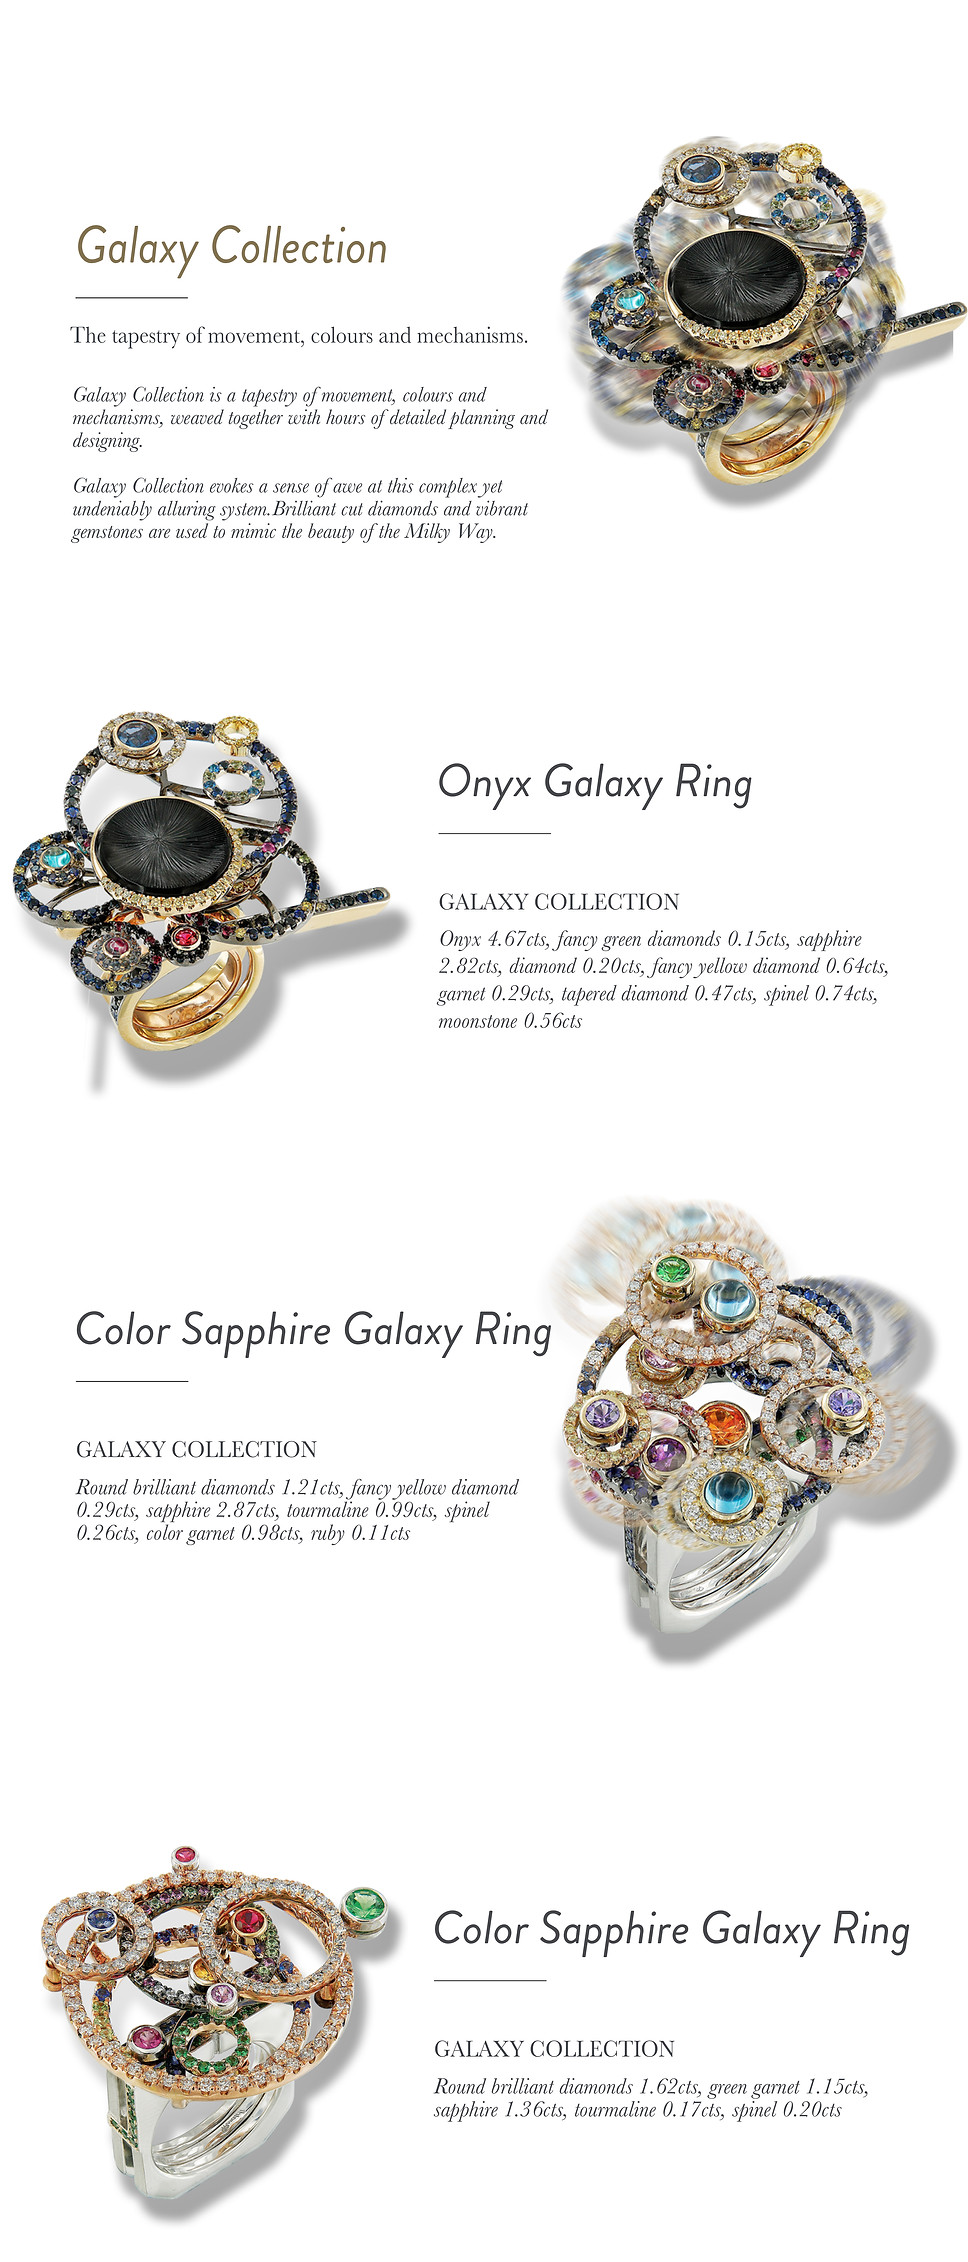 galaxy collection full page.jpg